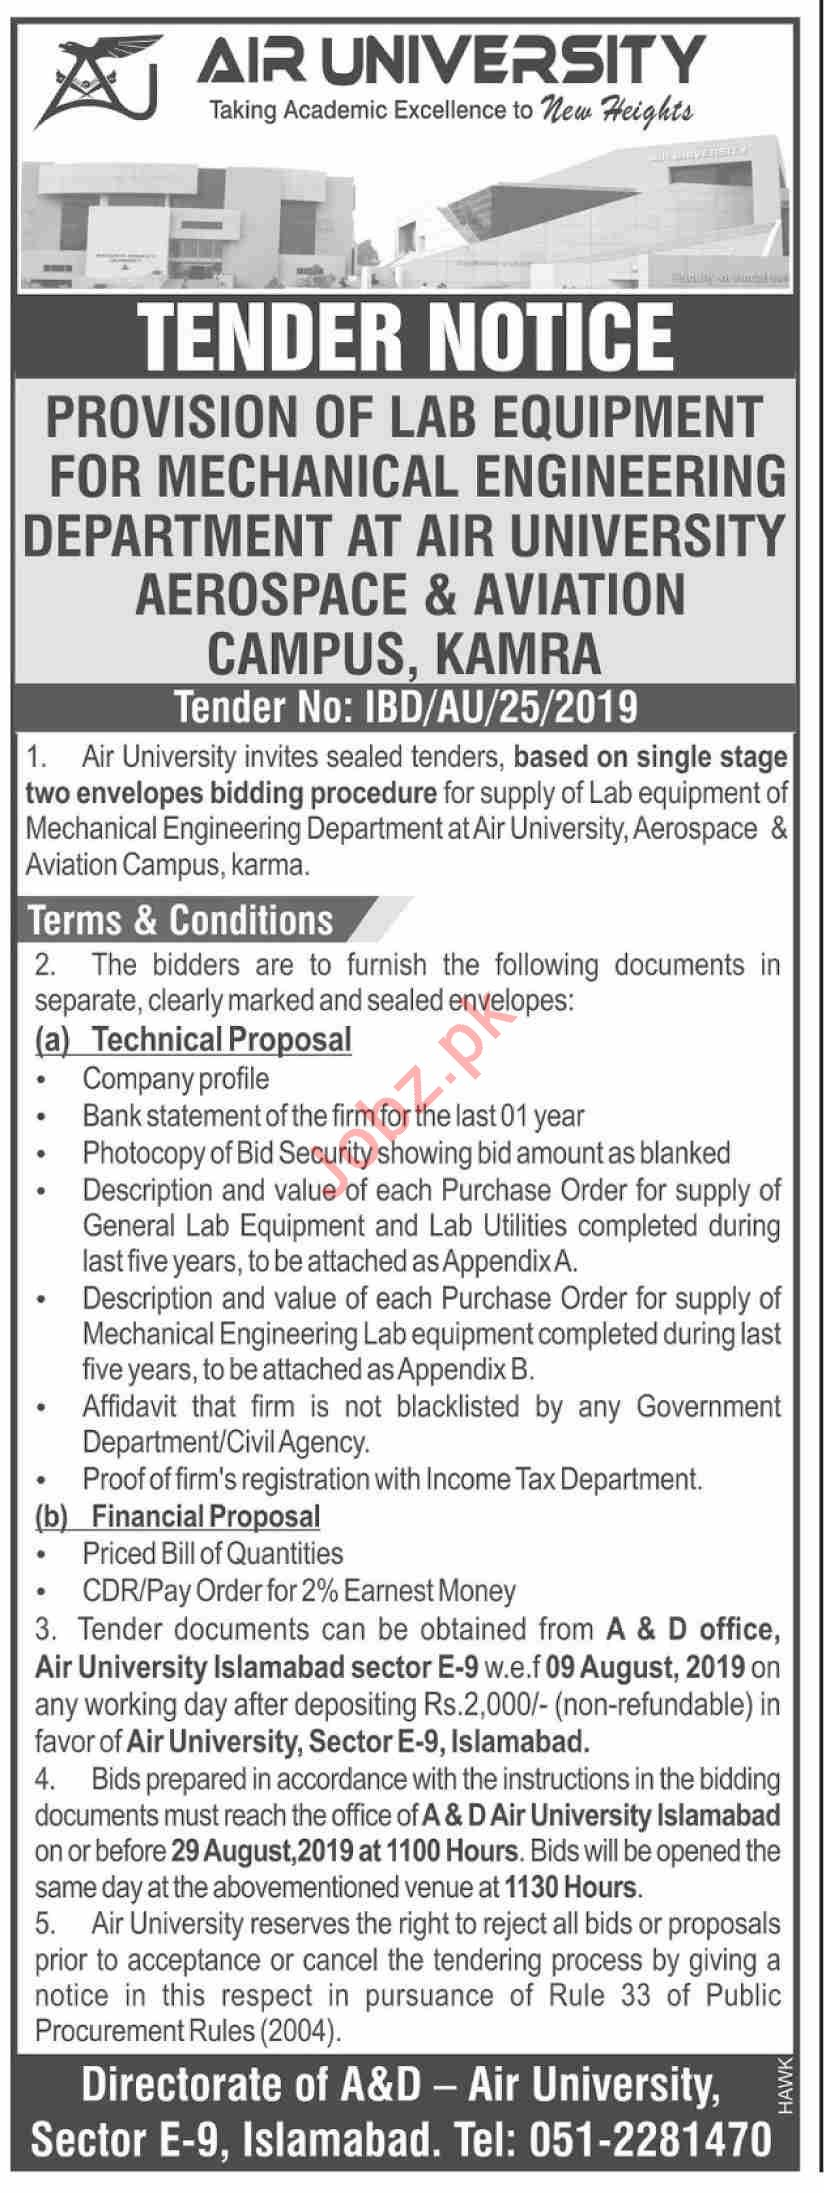 Air University Tender Provision of Lab Equipment 2019 Government